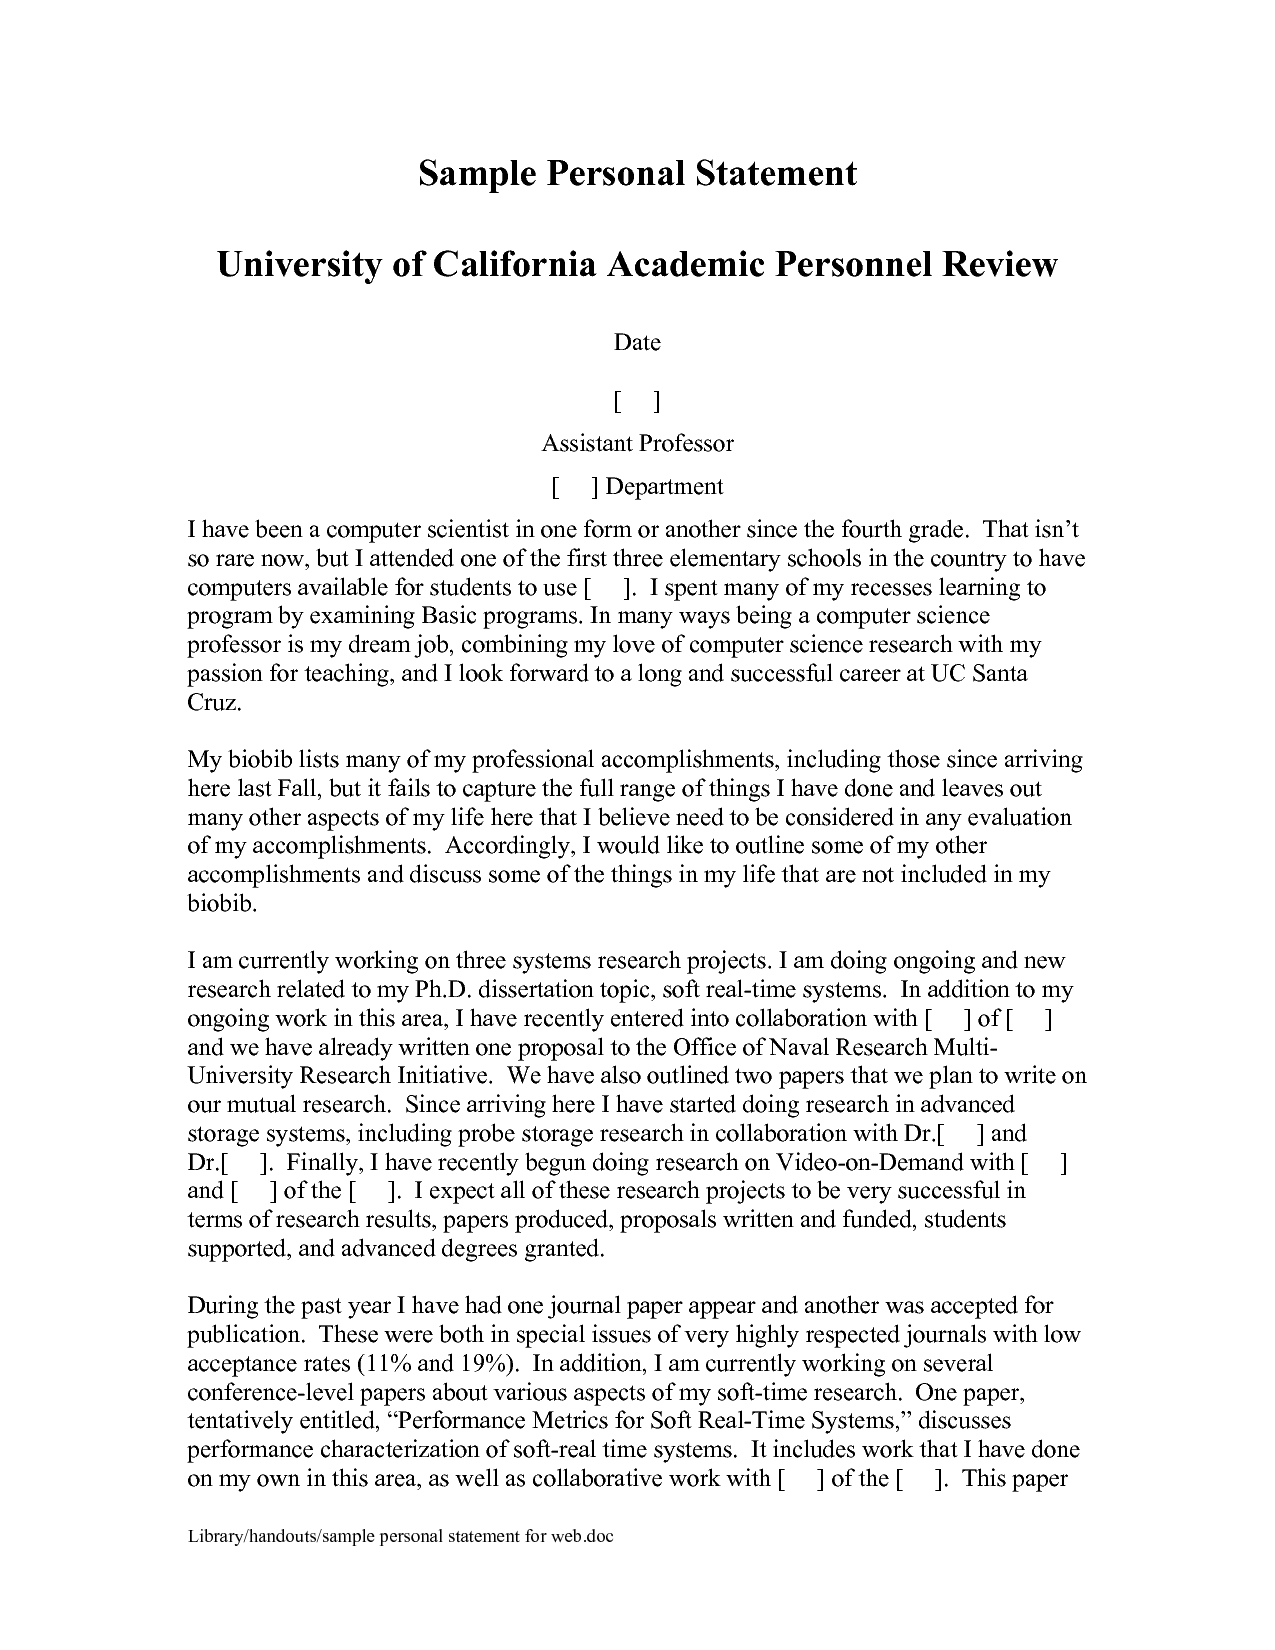 007 Best mba essay. Writing an academic essay means fashioning